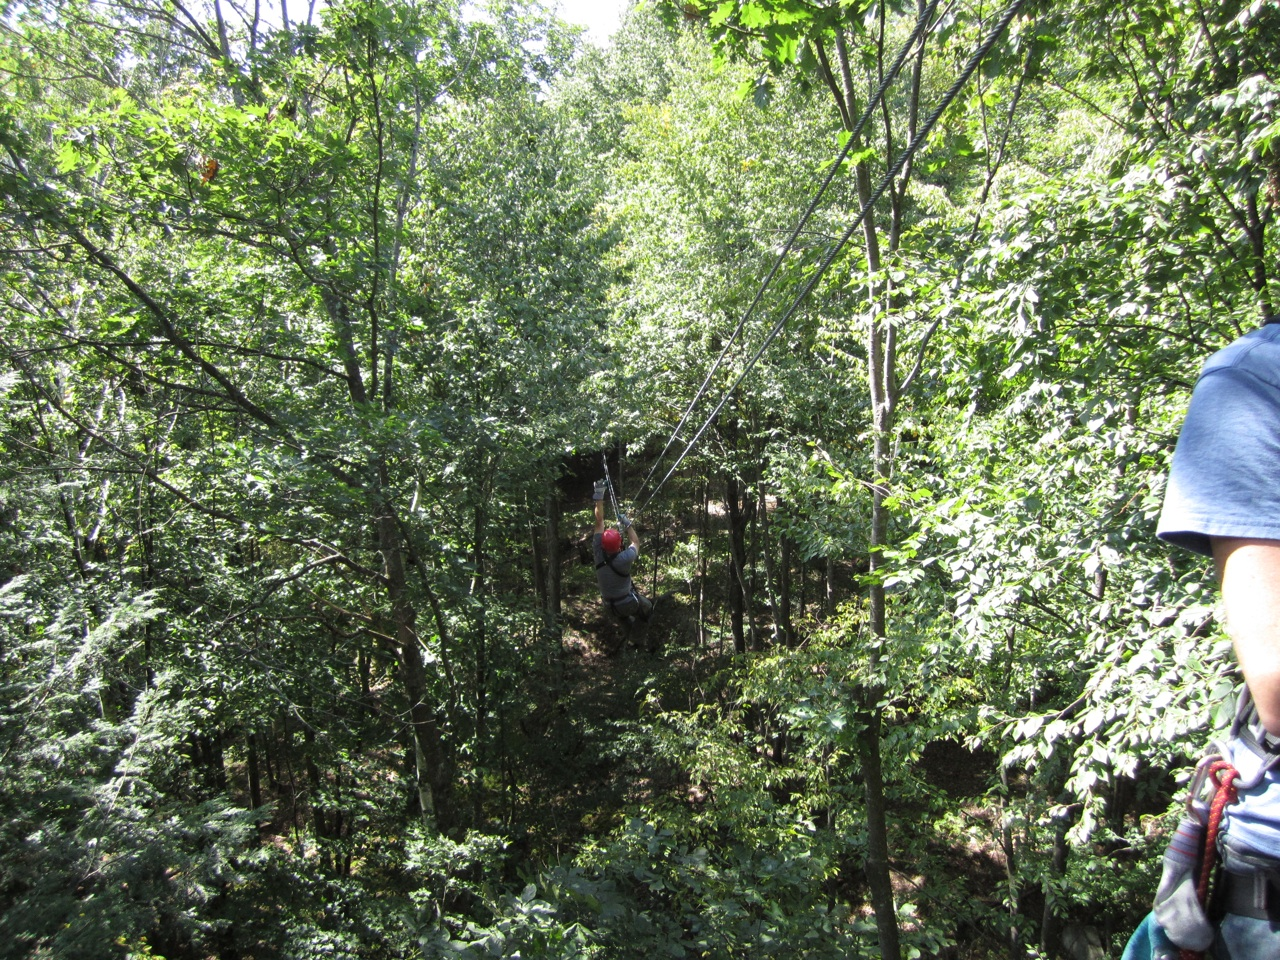 Jonathan Zipping Through The Forest